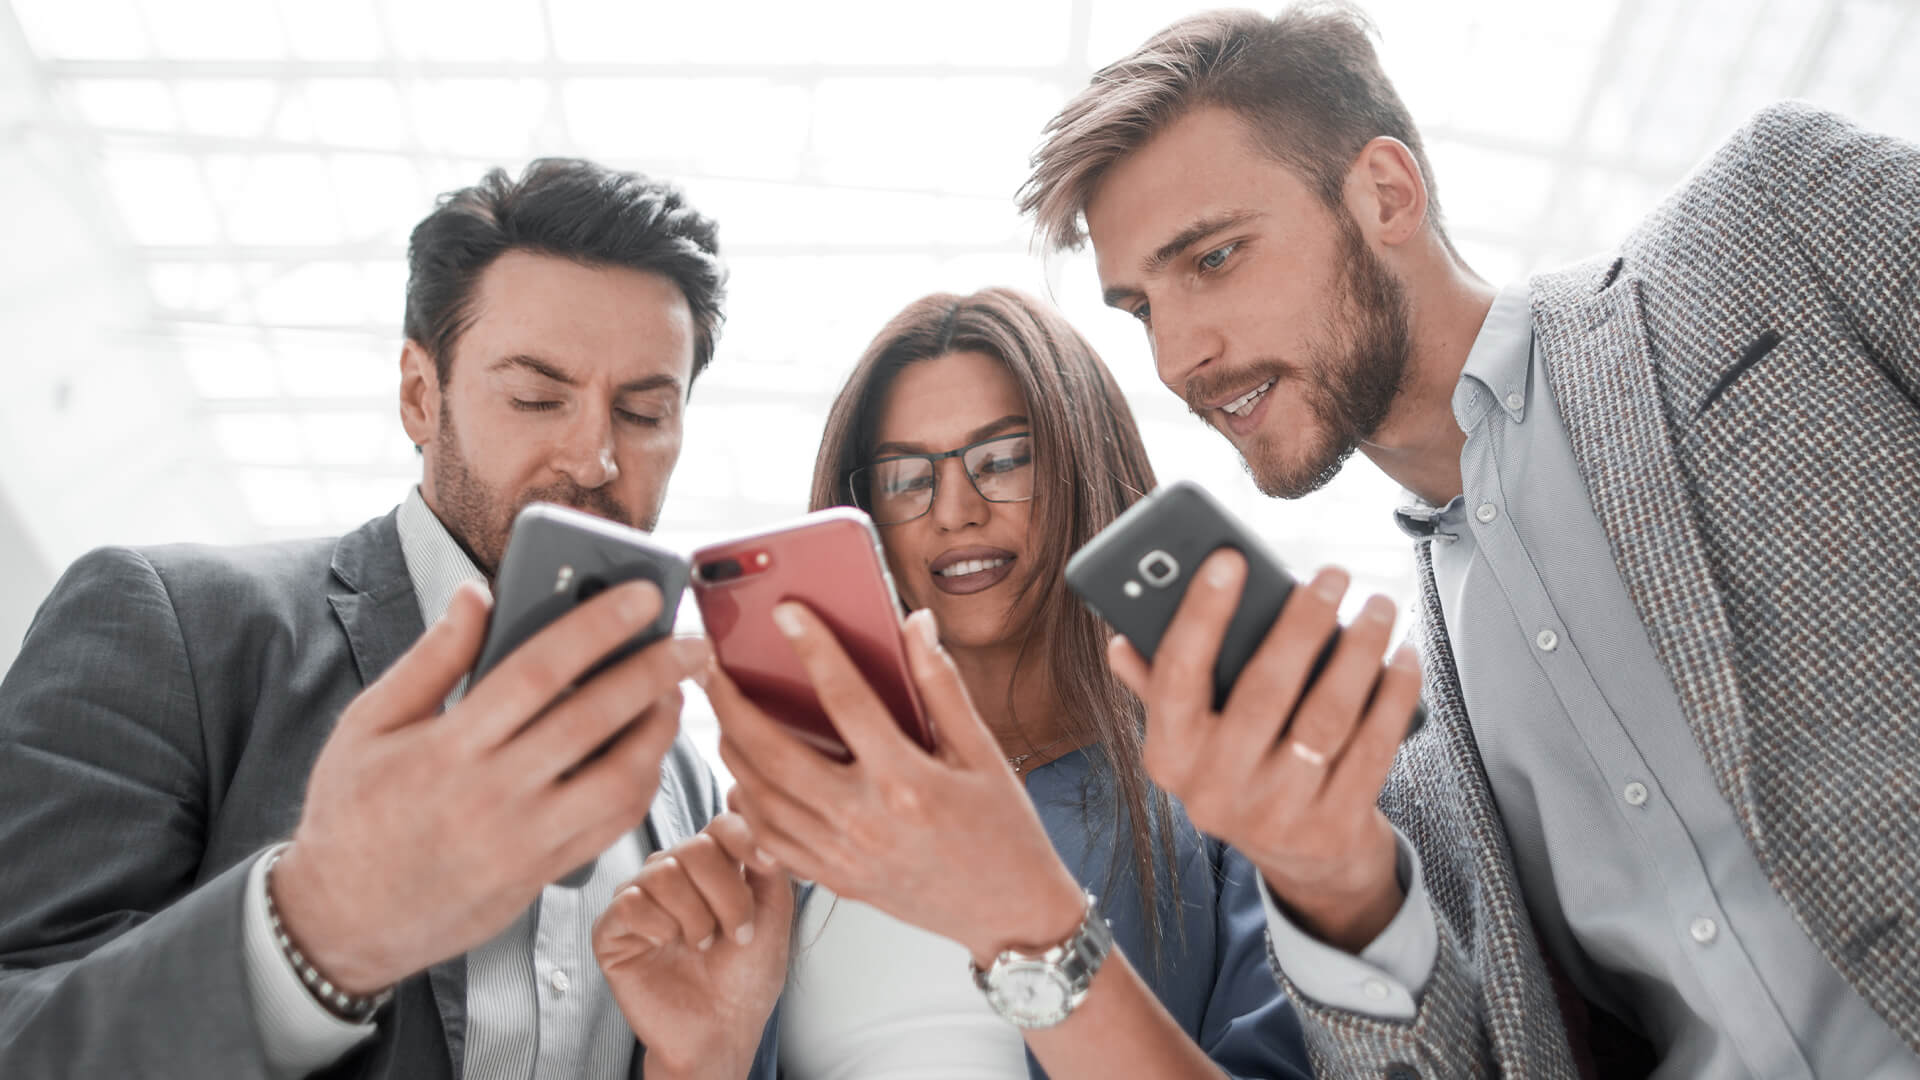 Three young work colleagues stood together, looking at their phones and smiling